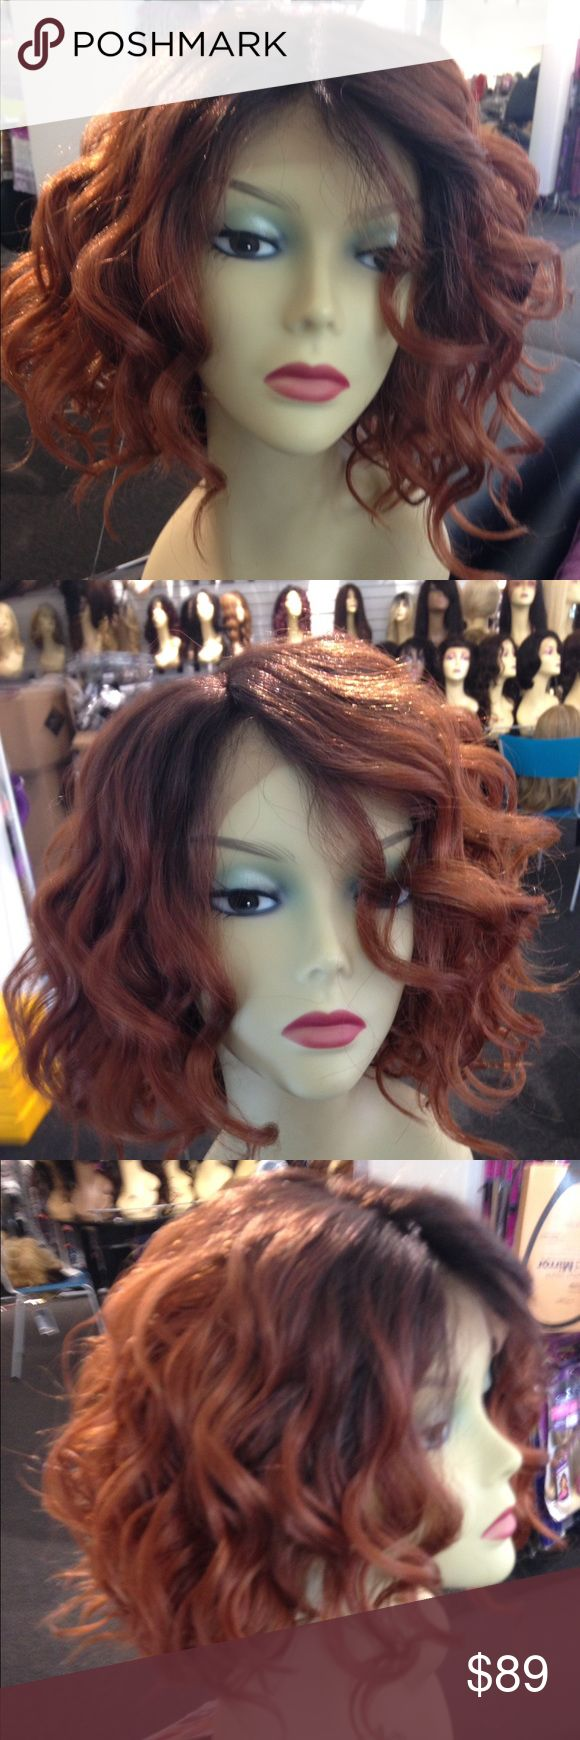 Ombre High Quality Wig check out my closet Wigs High Quality human hair blended with the finest quality fibers you can curl heat resistant adjustable cap wig I ship ASAP Accessories Hair Accessories